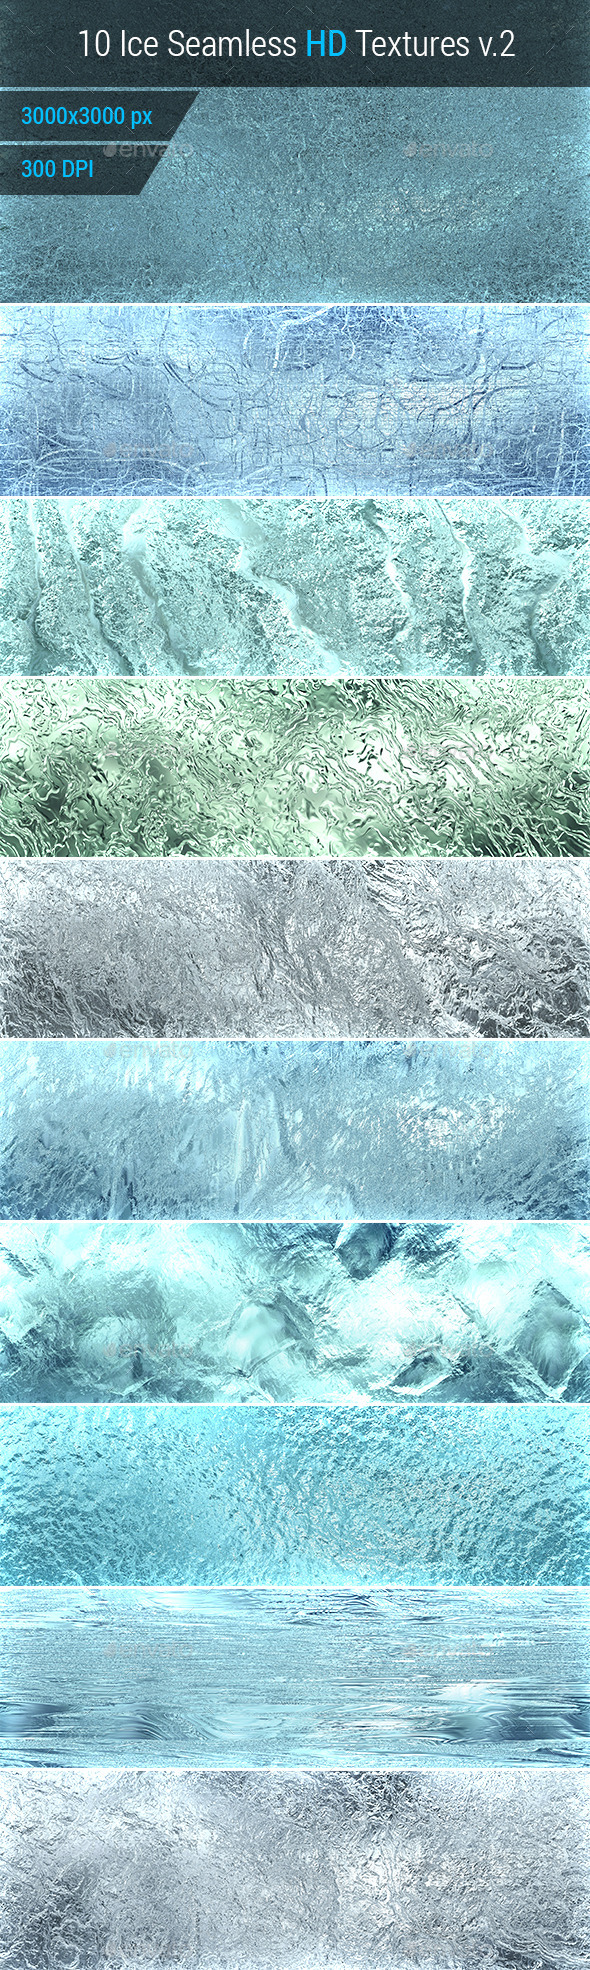 Ice Seamless and Tileable Background Texture v.2